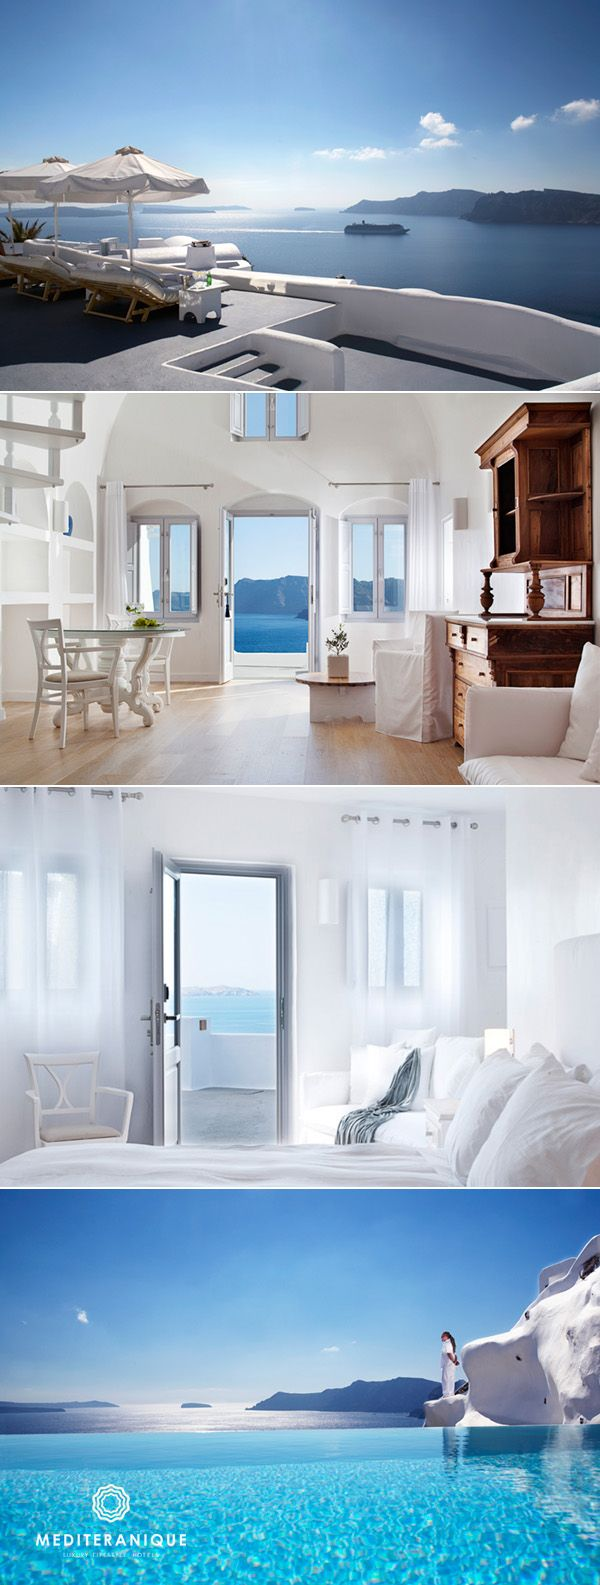 The katikies hotel is a luxury boutique hotel in santorini greece book your stay at the katikies hotel santorini today with mediteranique